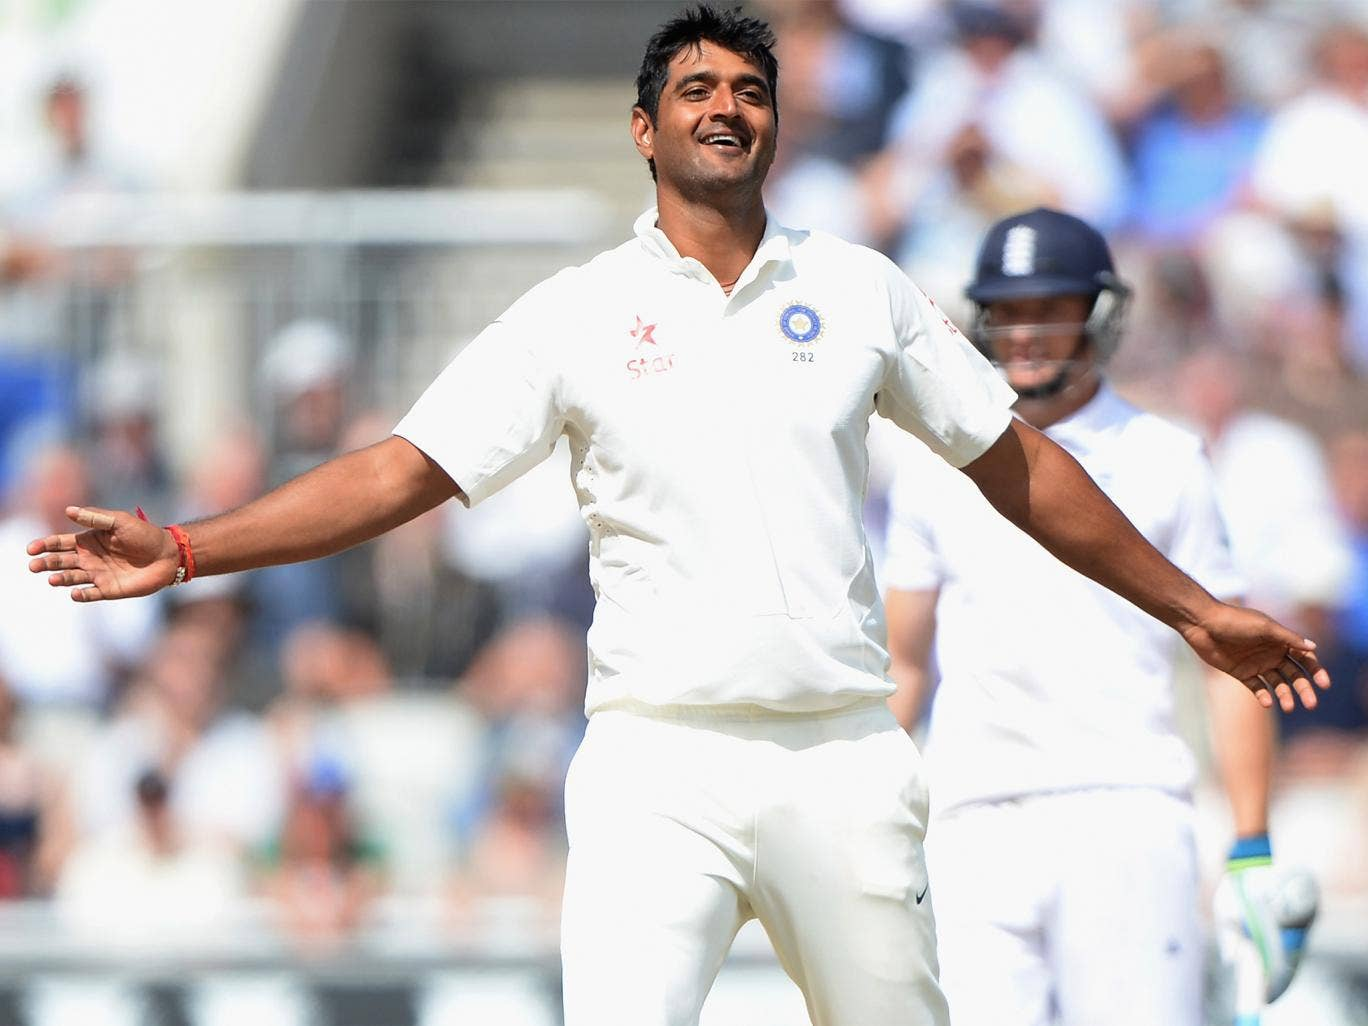 Pankaj Singh, who has begun to enjoy a cult following among cricket devotees, celebrates taking his first Test wicket at Old Trafford last week